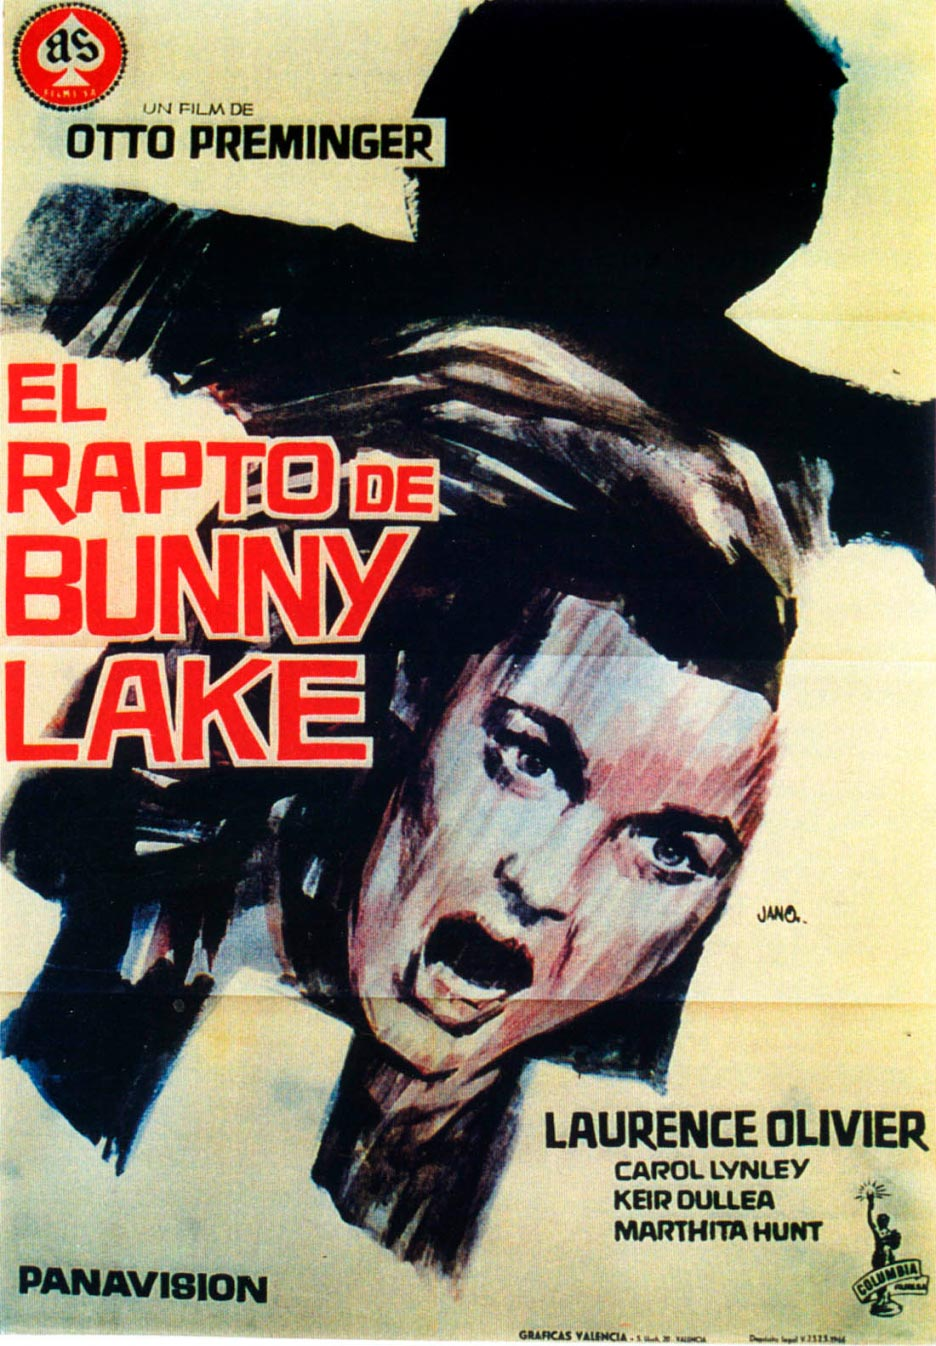 el rapto de bunny lake bunny lake is missing